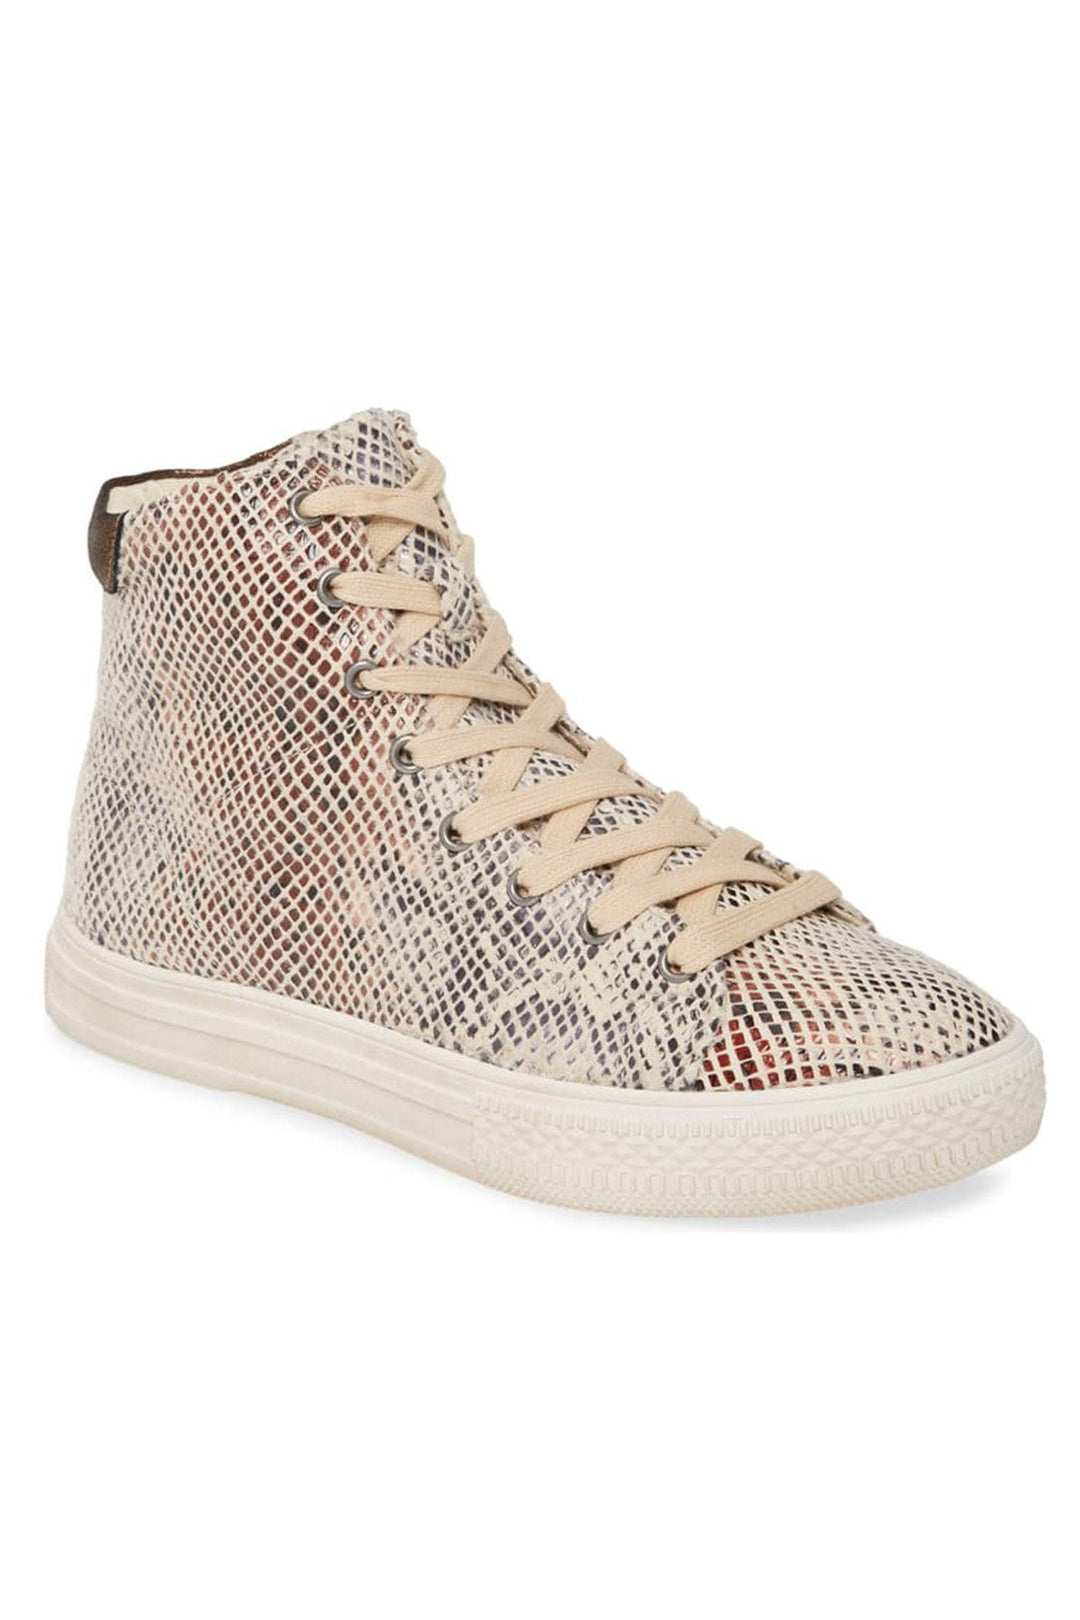 Eagle Micro Snake Print Natural High Top Sneaker